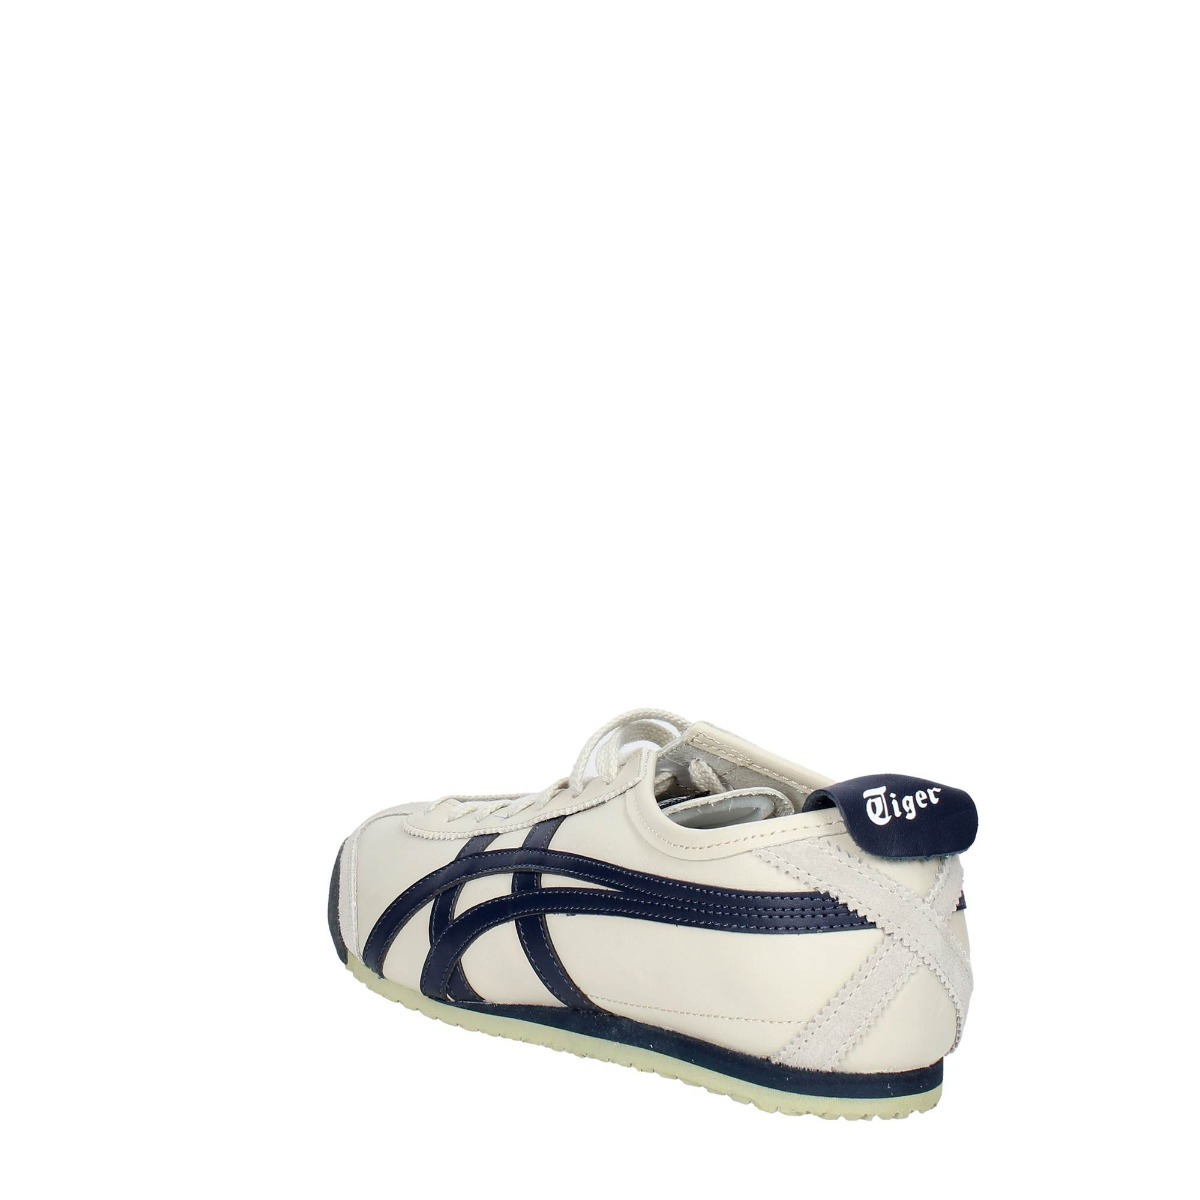 size 40 68946 d791e Tenis Onitsuka Tiger Mexico 66 Dl408.1659 - Beige